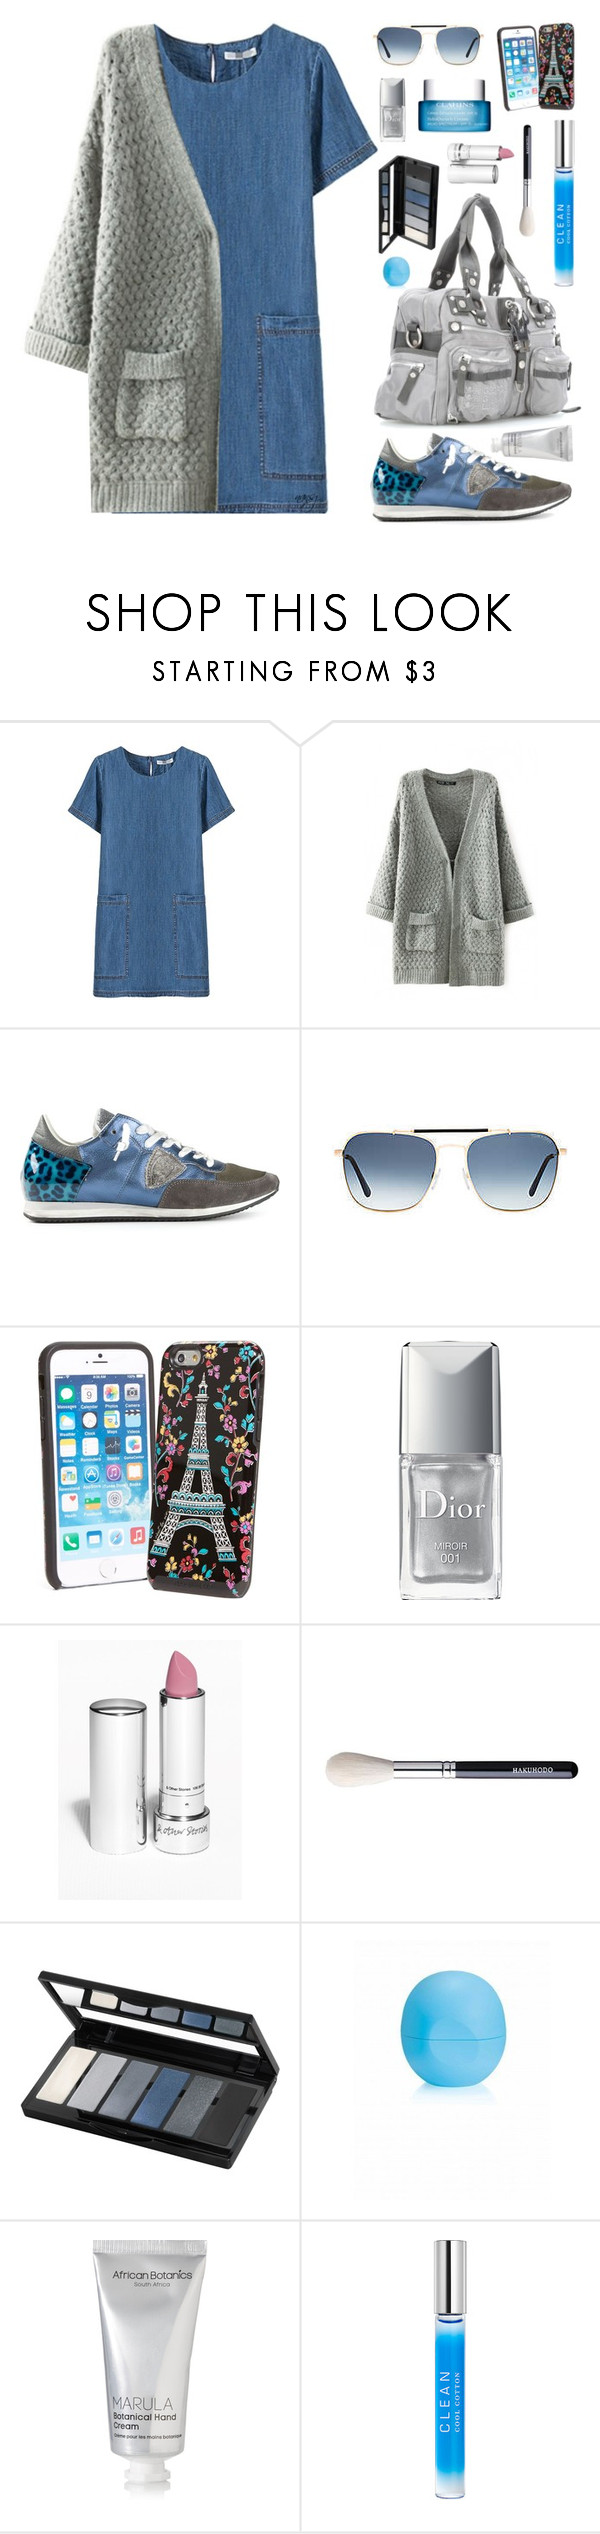 """""""Shop Till You Drop"""" by nansg ❤ liked on Polyvore featuring Philippe Model, George Gina & Lucy, Tom Ford, Vera Bradley, Christian Dior, Isadora, African Botanics, CLEAN, Clarins and beautifulhalo"""